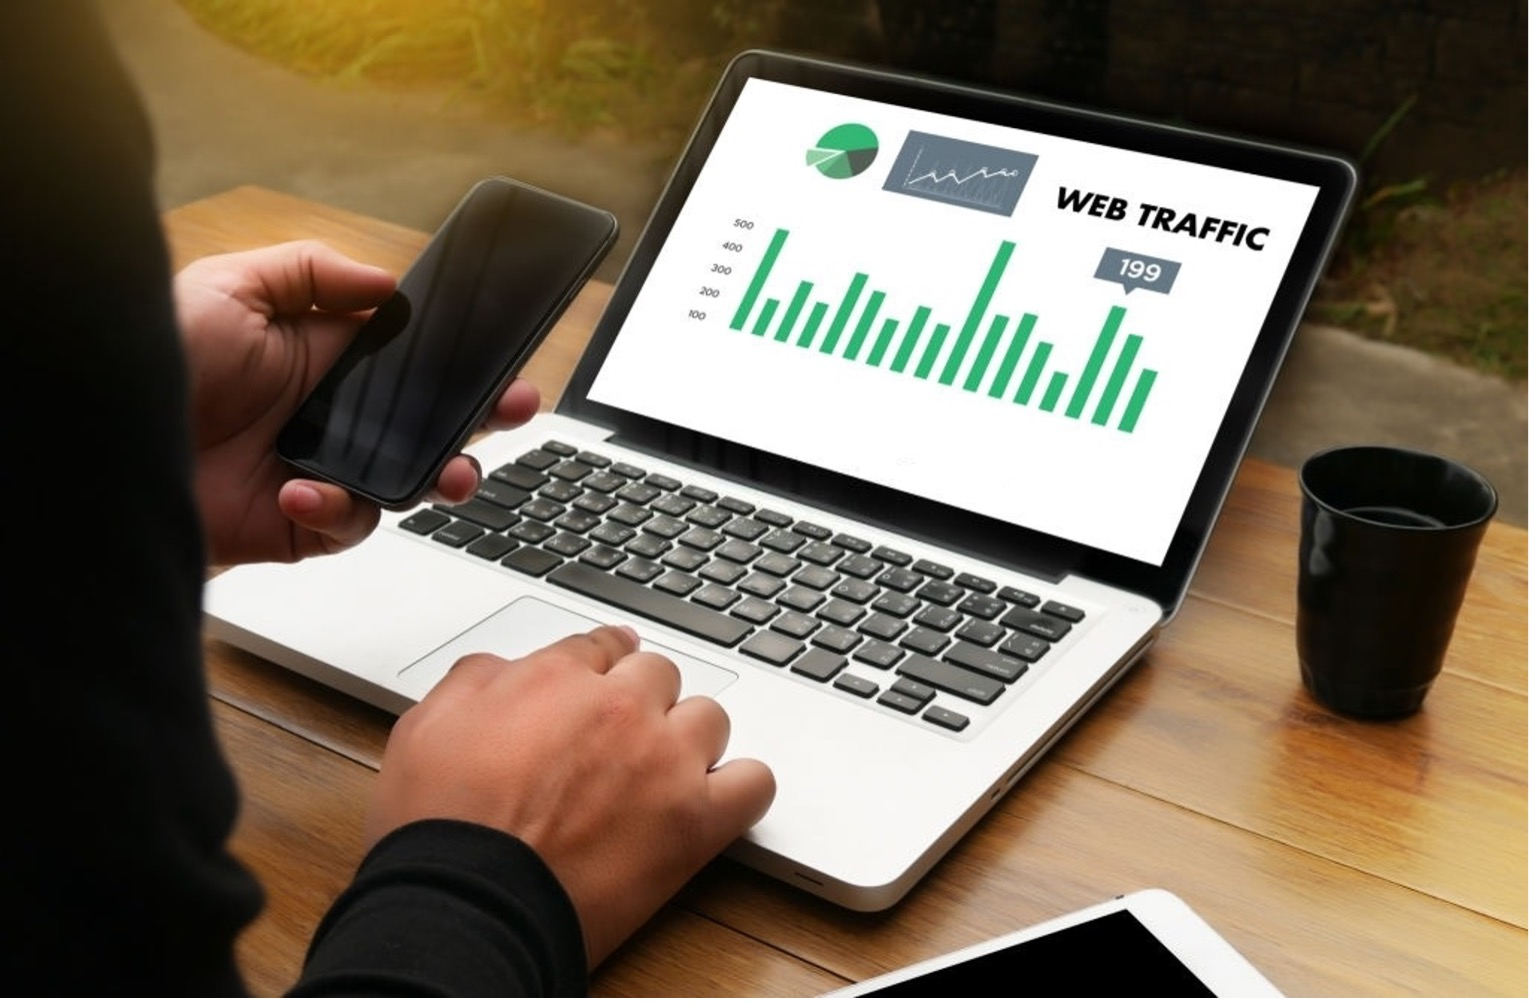 6 Practical Ways You Can Triple Your Website Traffic